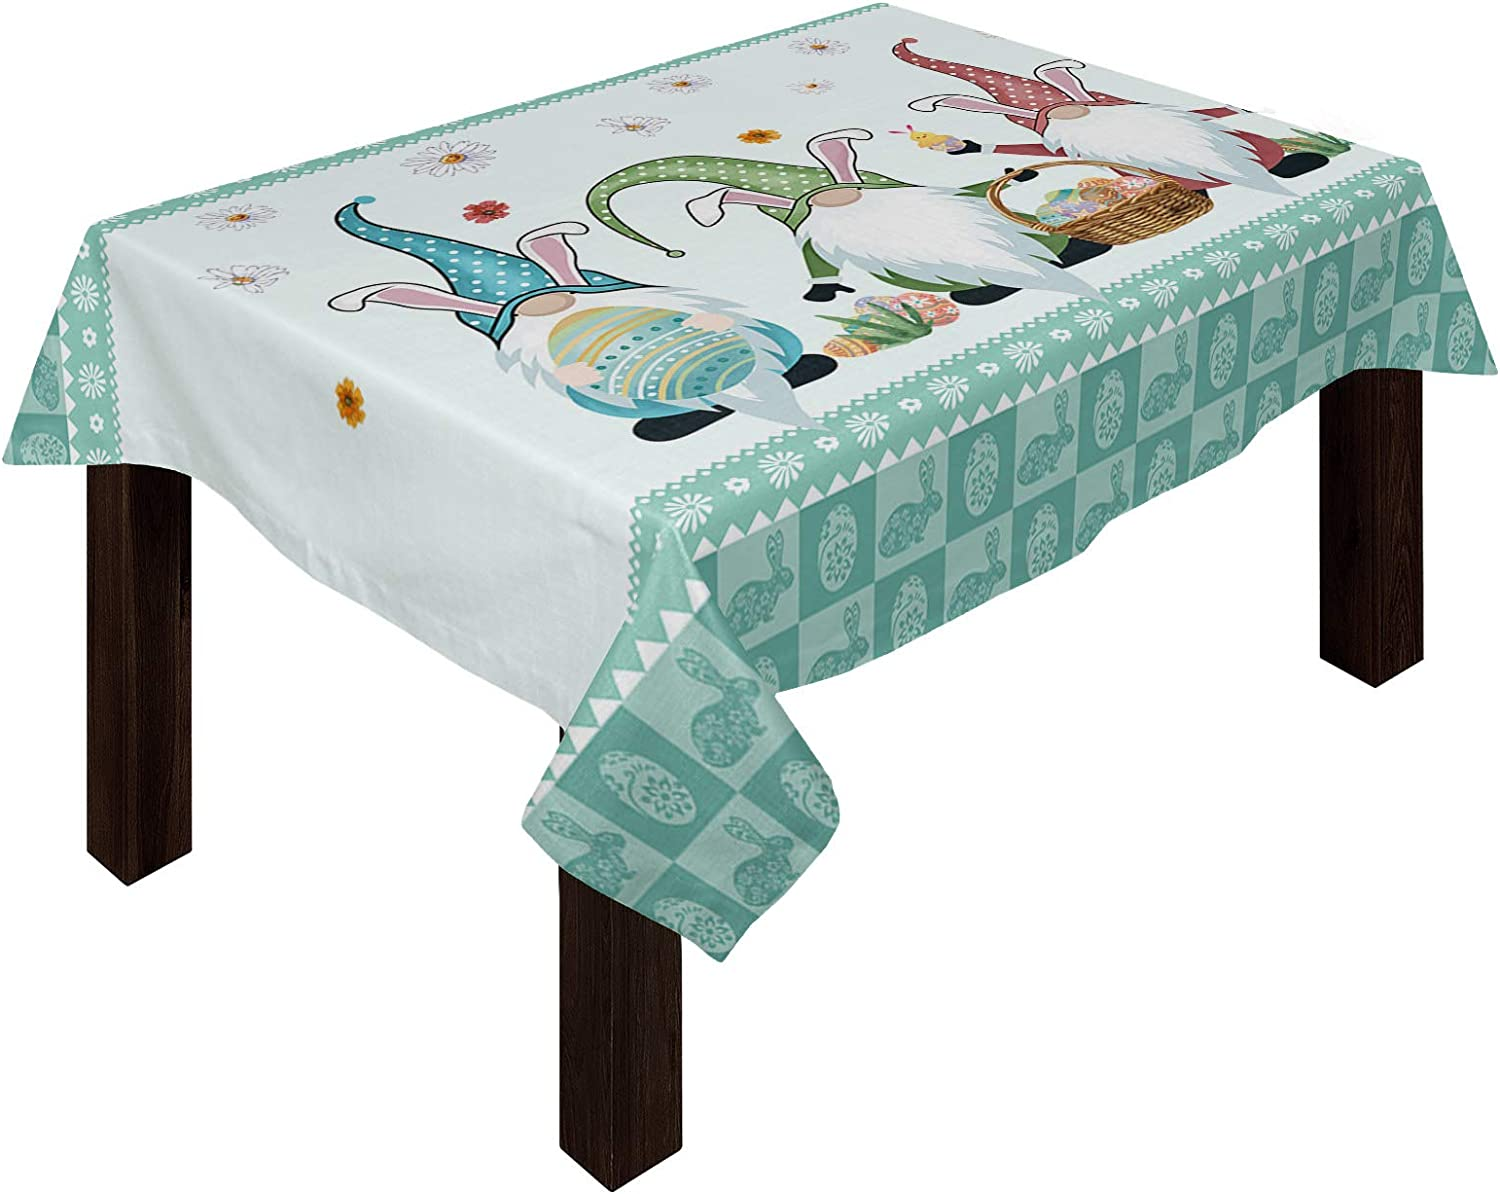 Yun 正規認証品 新規格 Nist Happy Easter Bunny Gnomes Table 爆買い送料無料 Cloths Cotton Eggs and